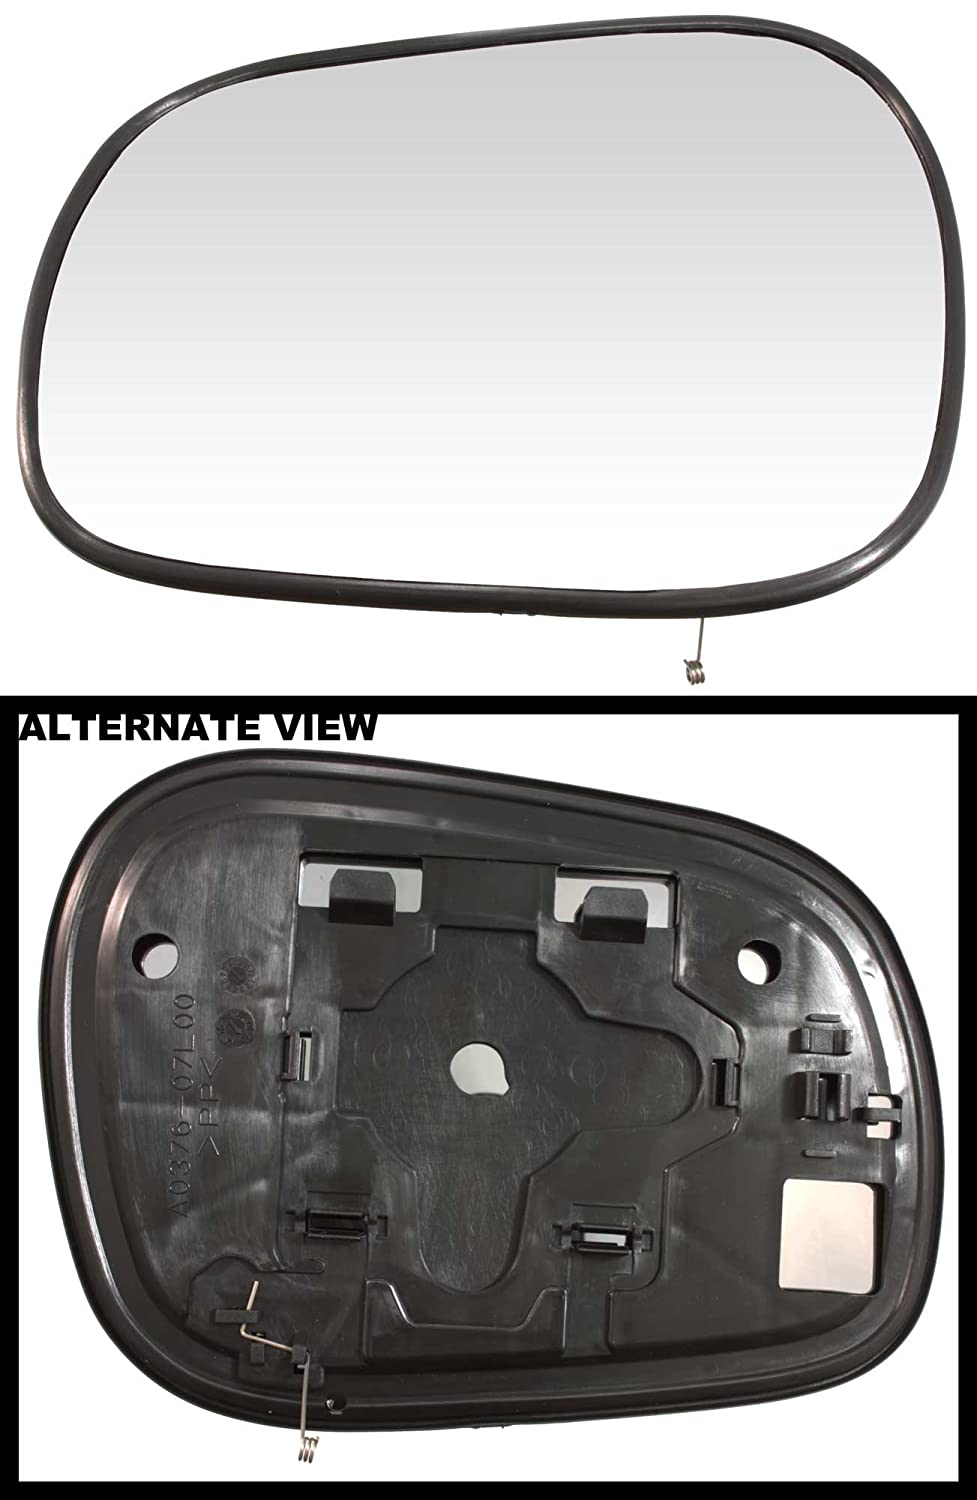 99-05 Suzuki Grand Vitara Non Heated Replaces 8476065D20 APDTY 67911 Replacement Left Side View Mirror Glass Fits Driver-Side